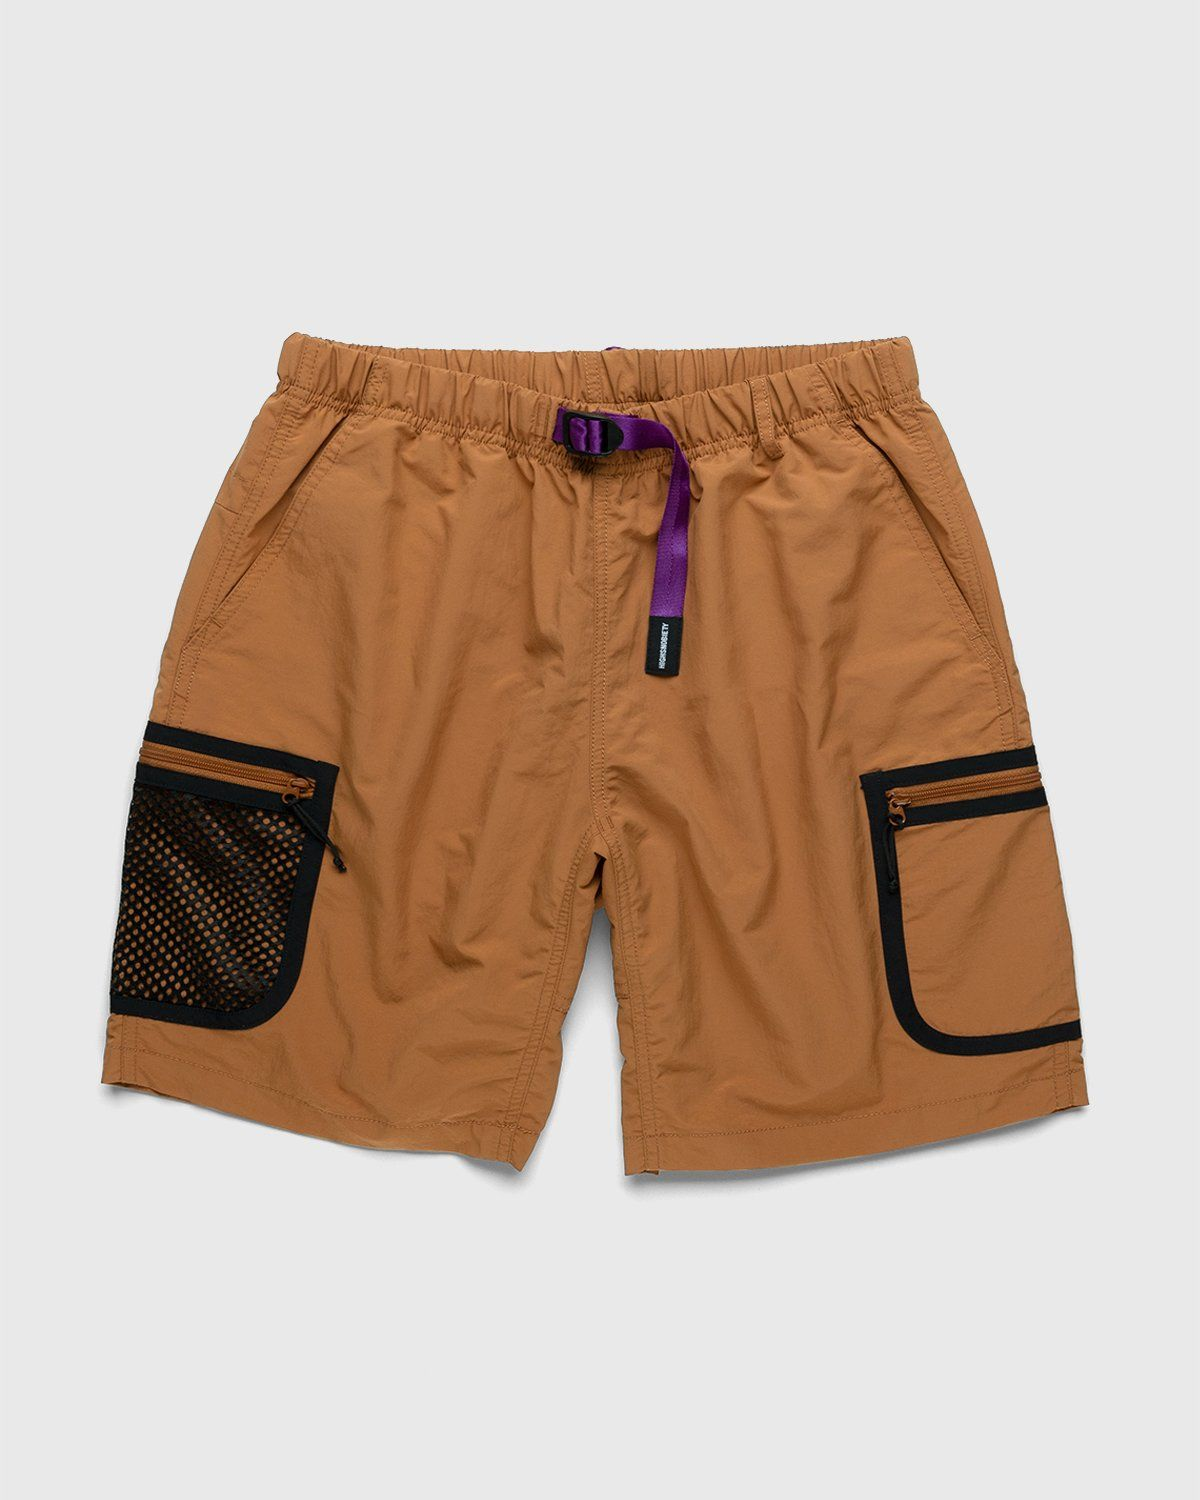 Gramicci for Highsnobiety – Shorts Rust - Image 1